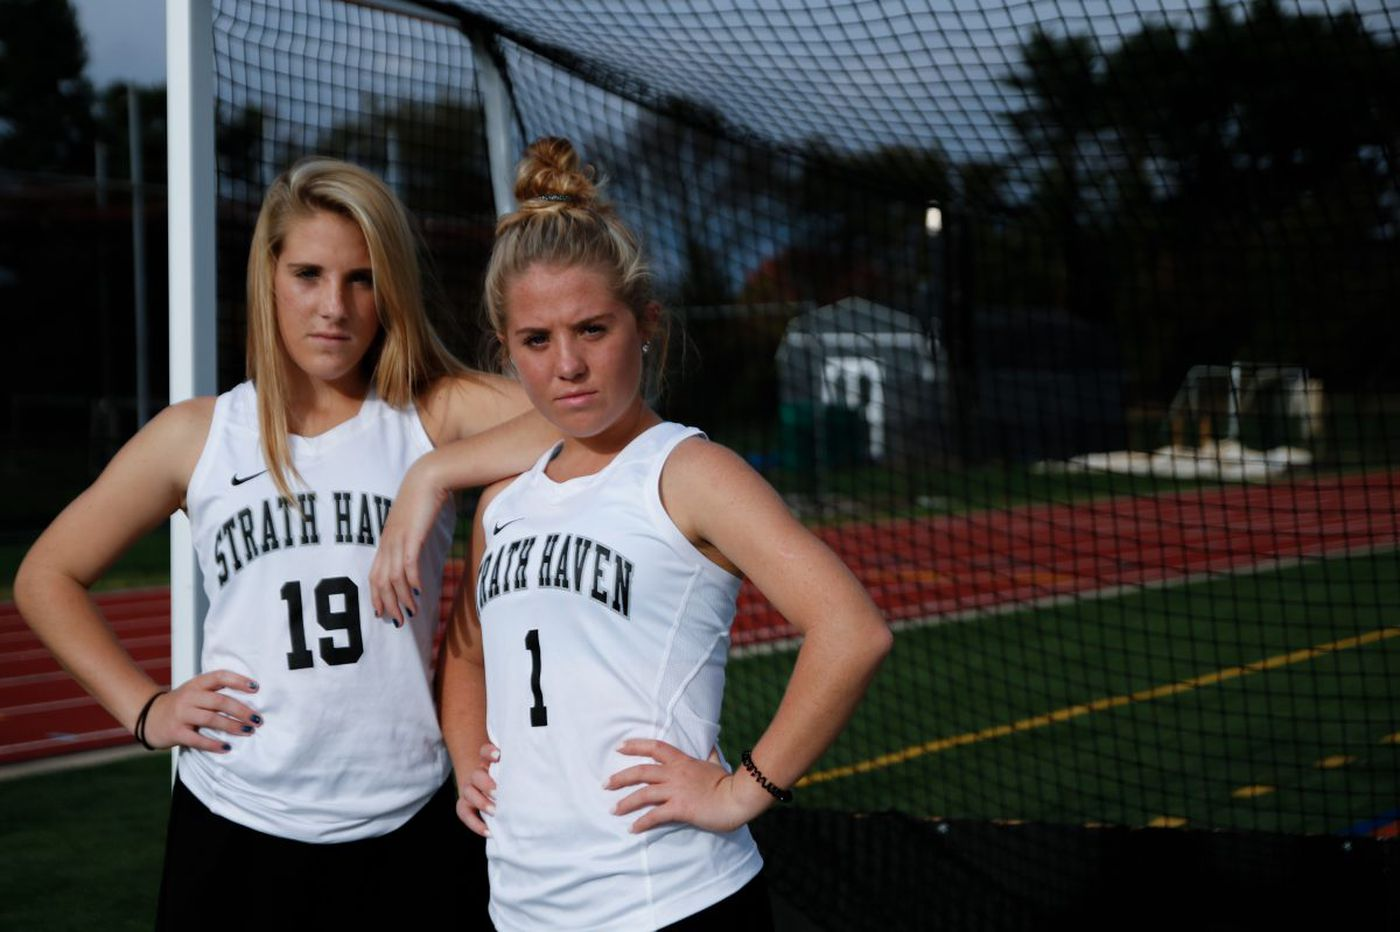 Raech sisters play big role in Strath Haven field hockey